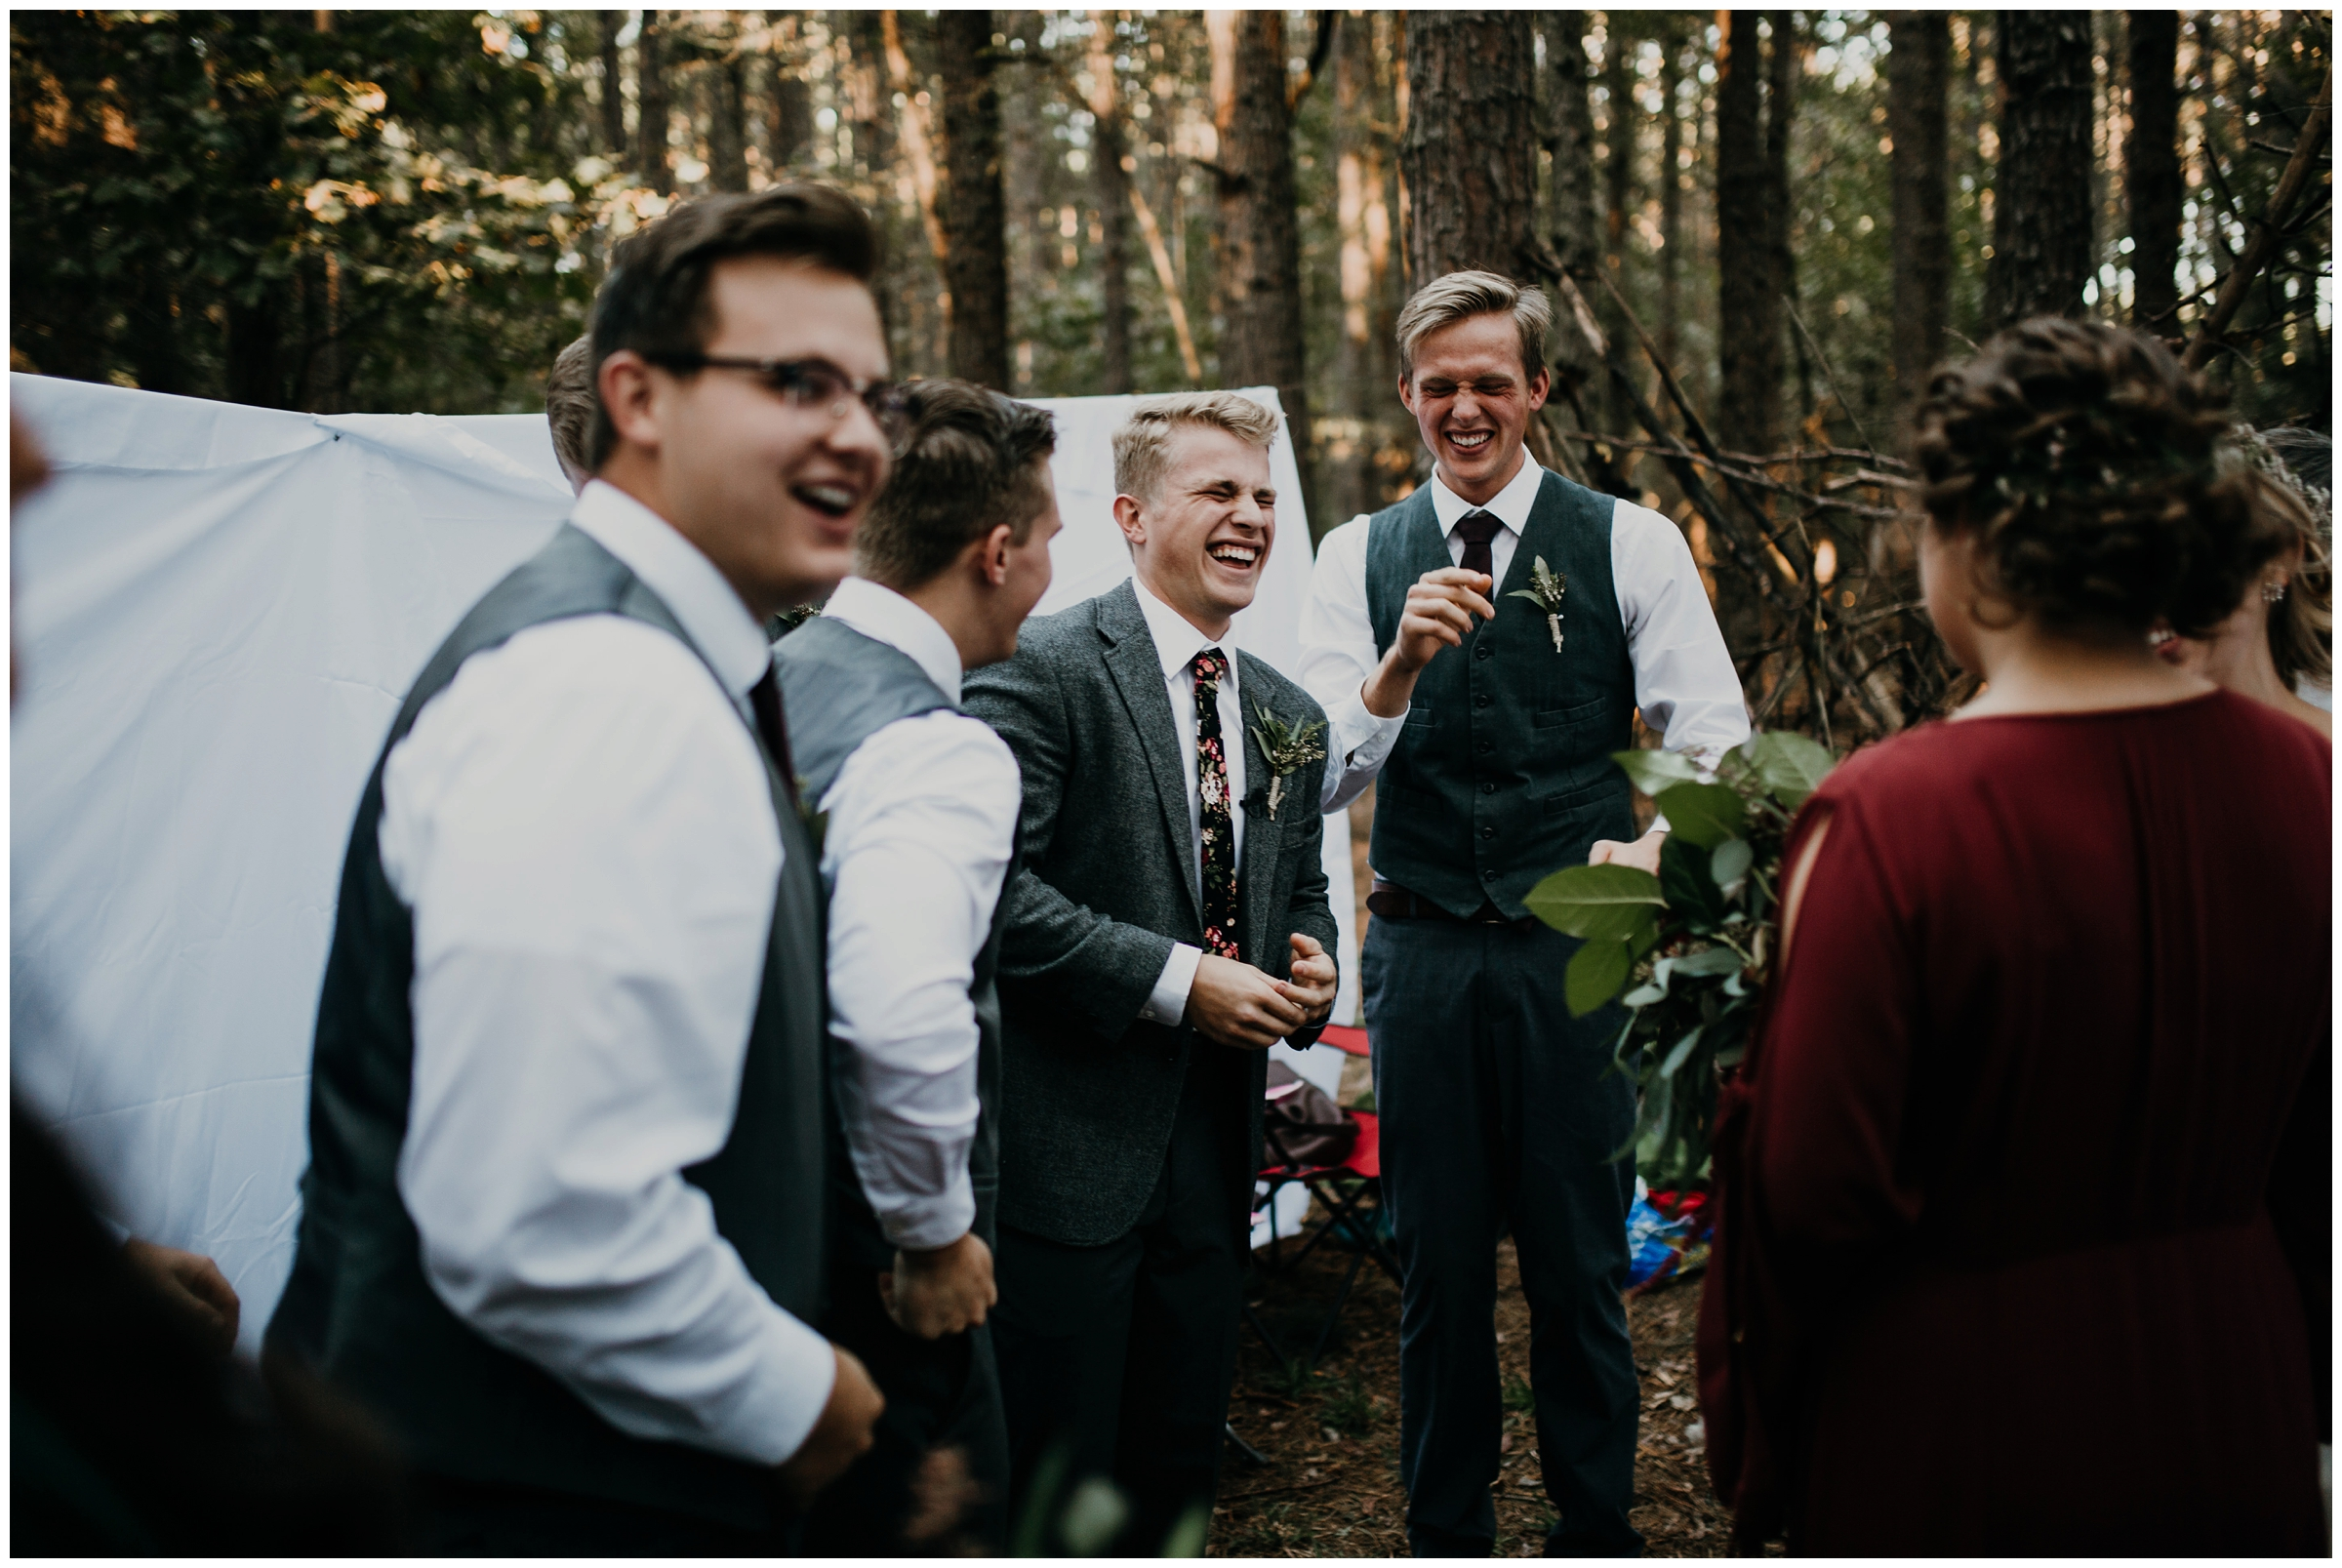 groom laughing with friends at wedding